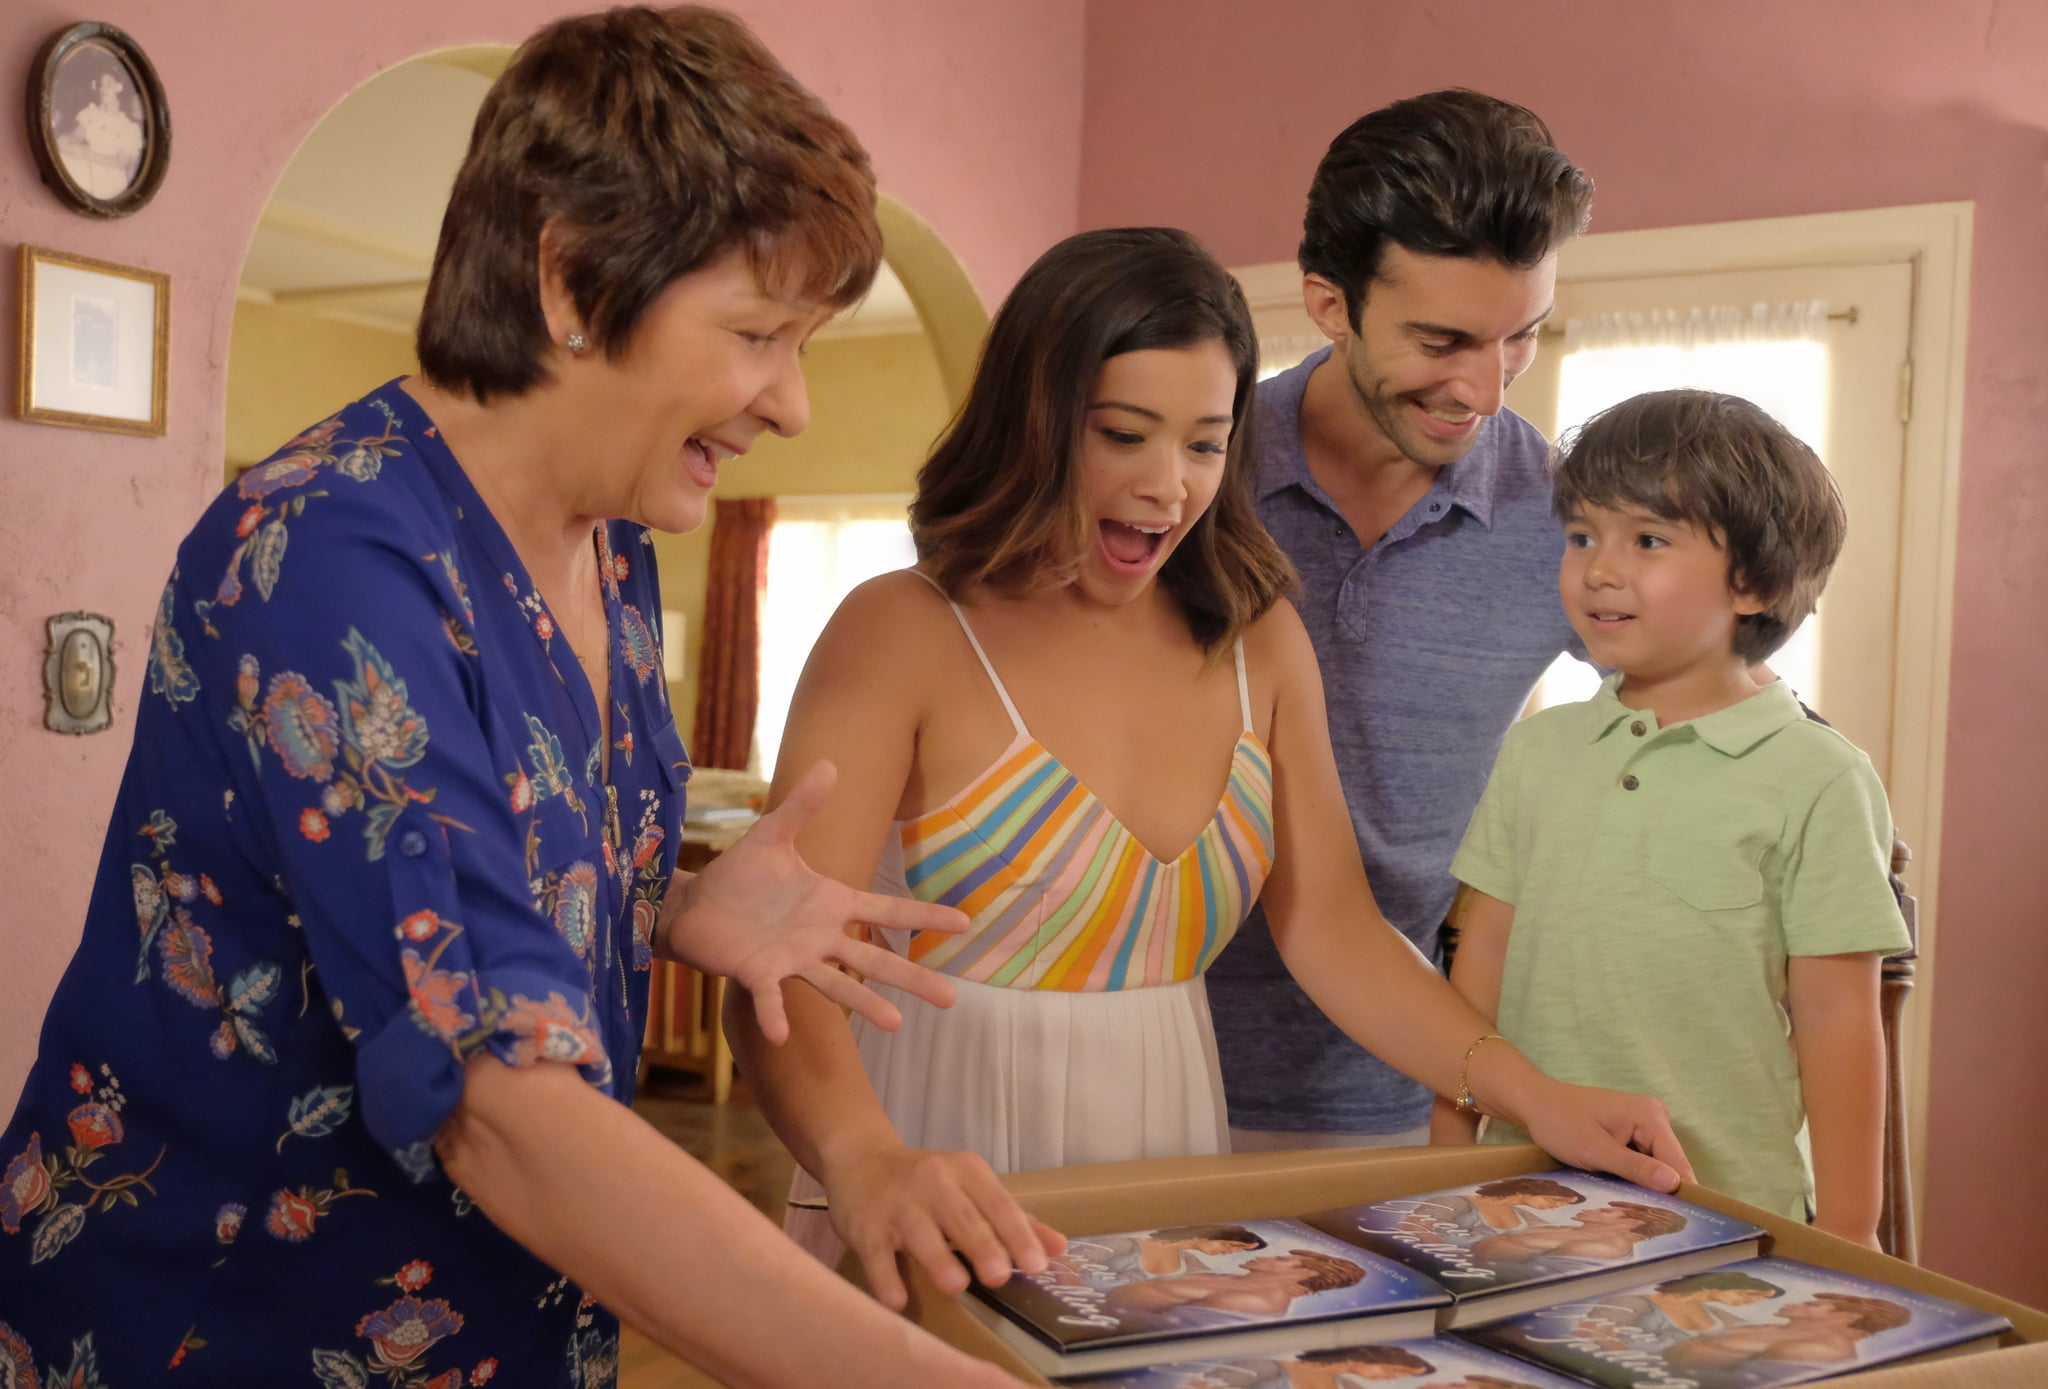 JANE THE VIRGIN, from left: Ivonne Coll, Gina Rodriguez, Justin Baldoni, Elias Jannsen, 'Chapter Seventy', (Season 4, ep. 406, aired Nov. 17, 2017). photo: Adam Rose / The CW / courtesy Everett Collection